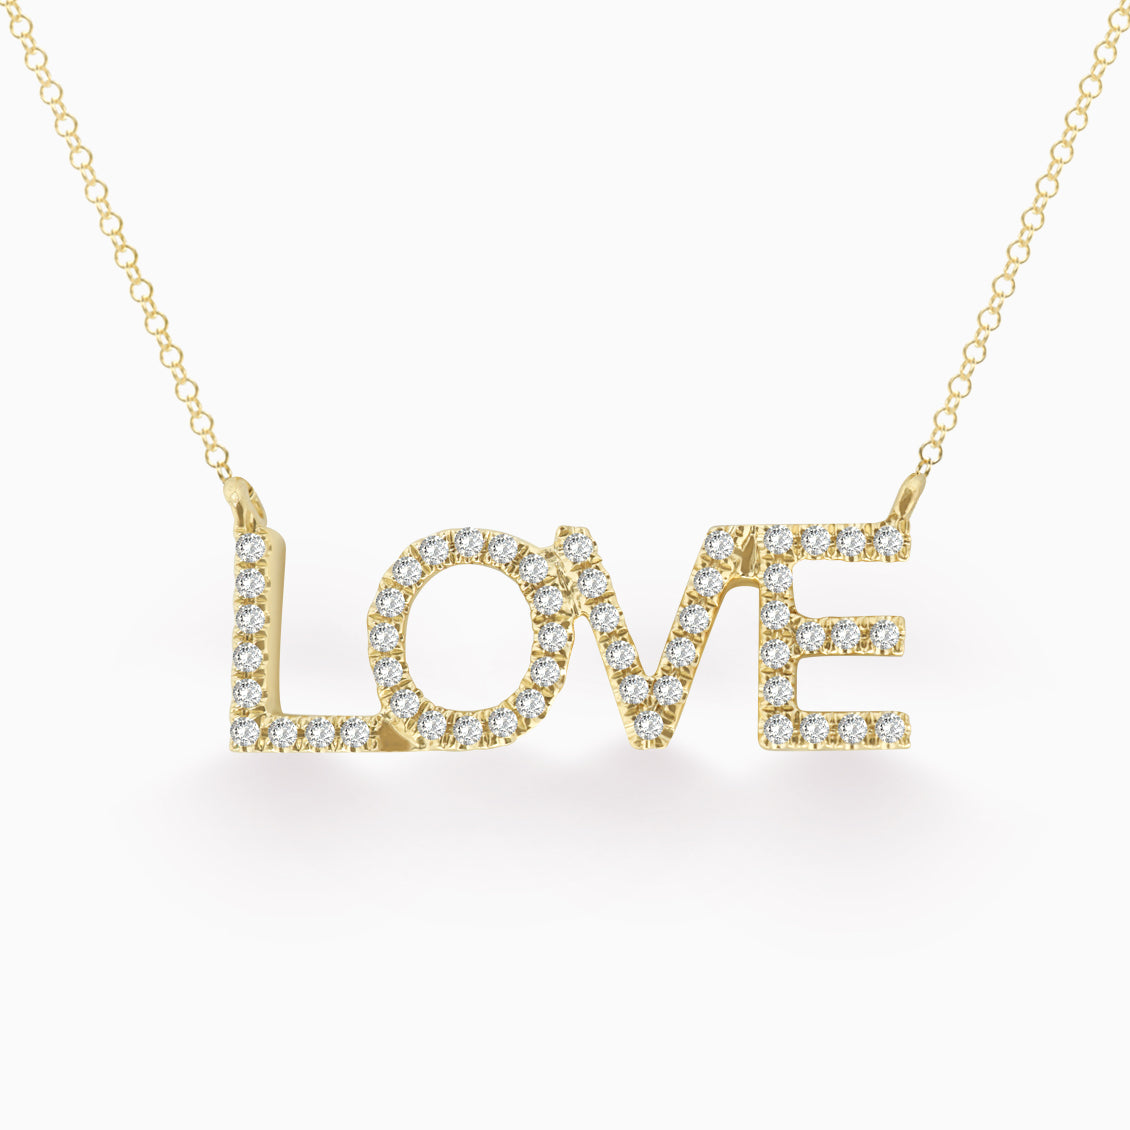 Collar en oro amarillo de 18K ¨Love¨ con brillantes